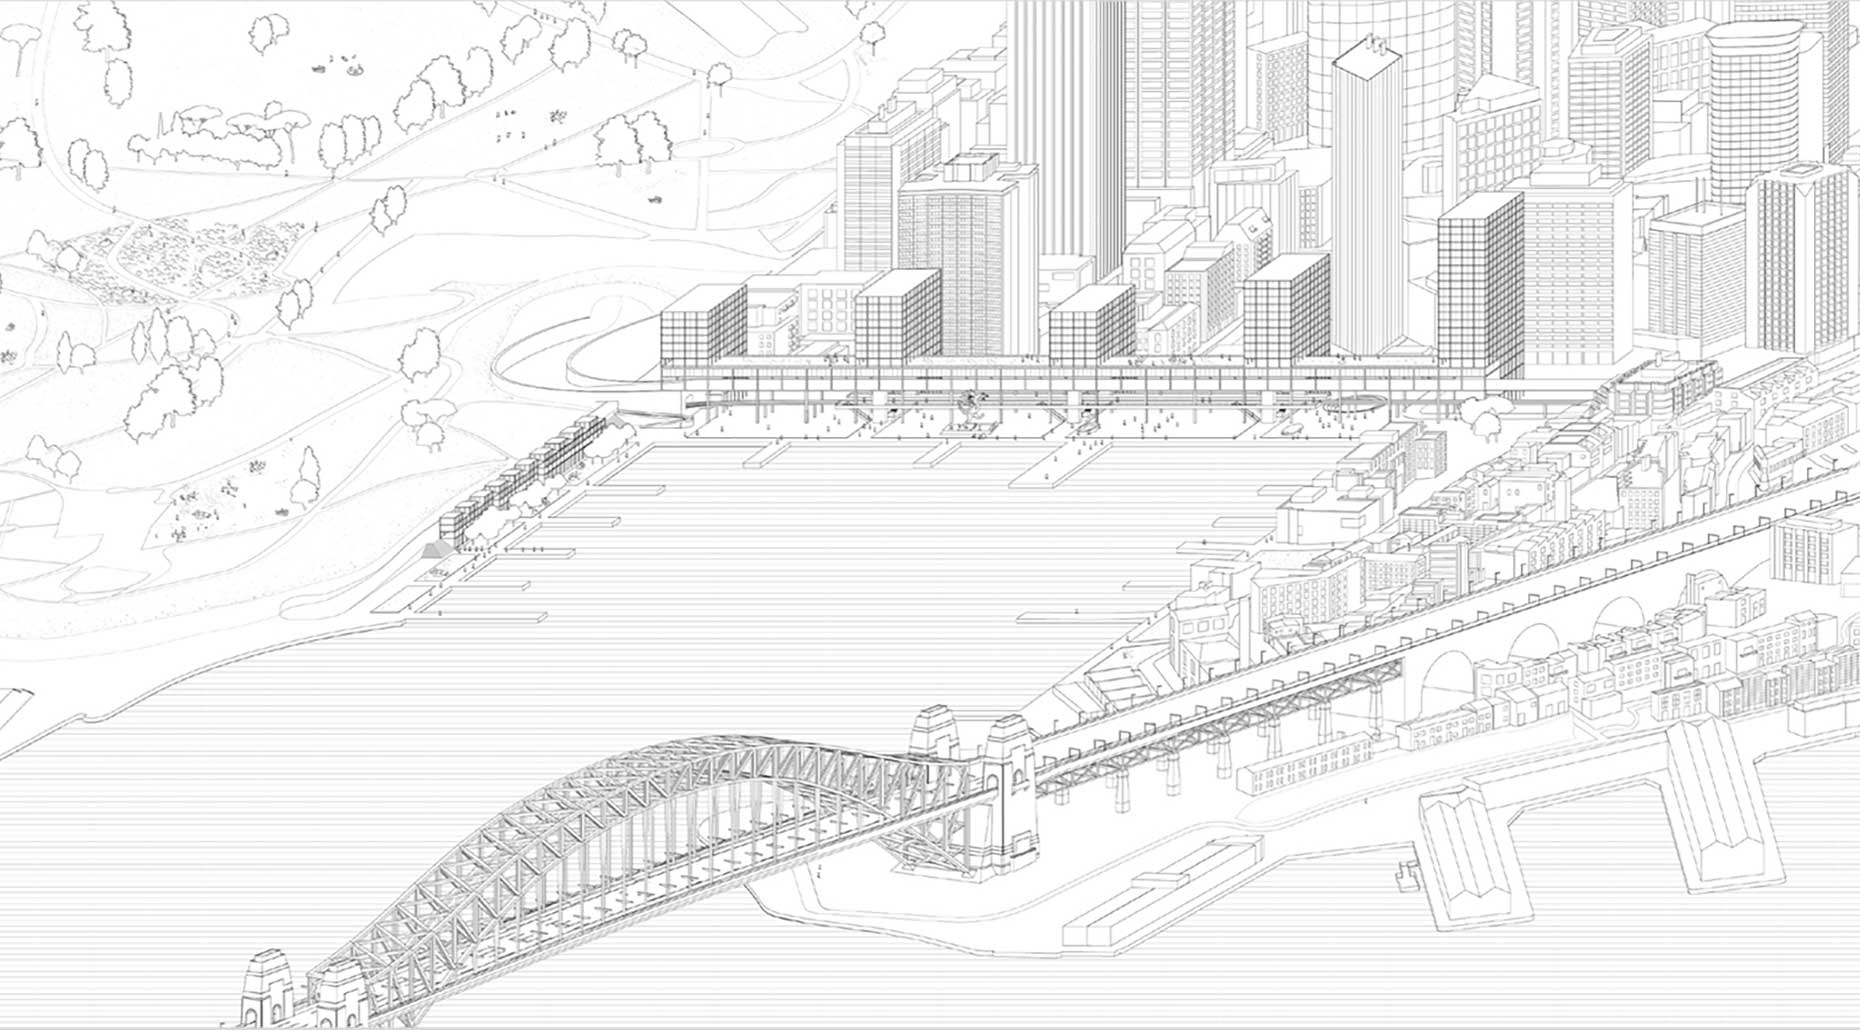 Image of a design of Housing for Circular Quay for Harvard University Thesis by Common Office. Image supplied by Common Office